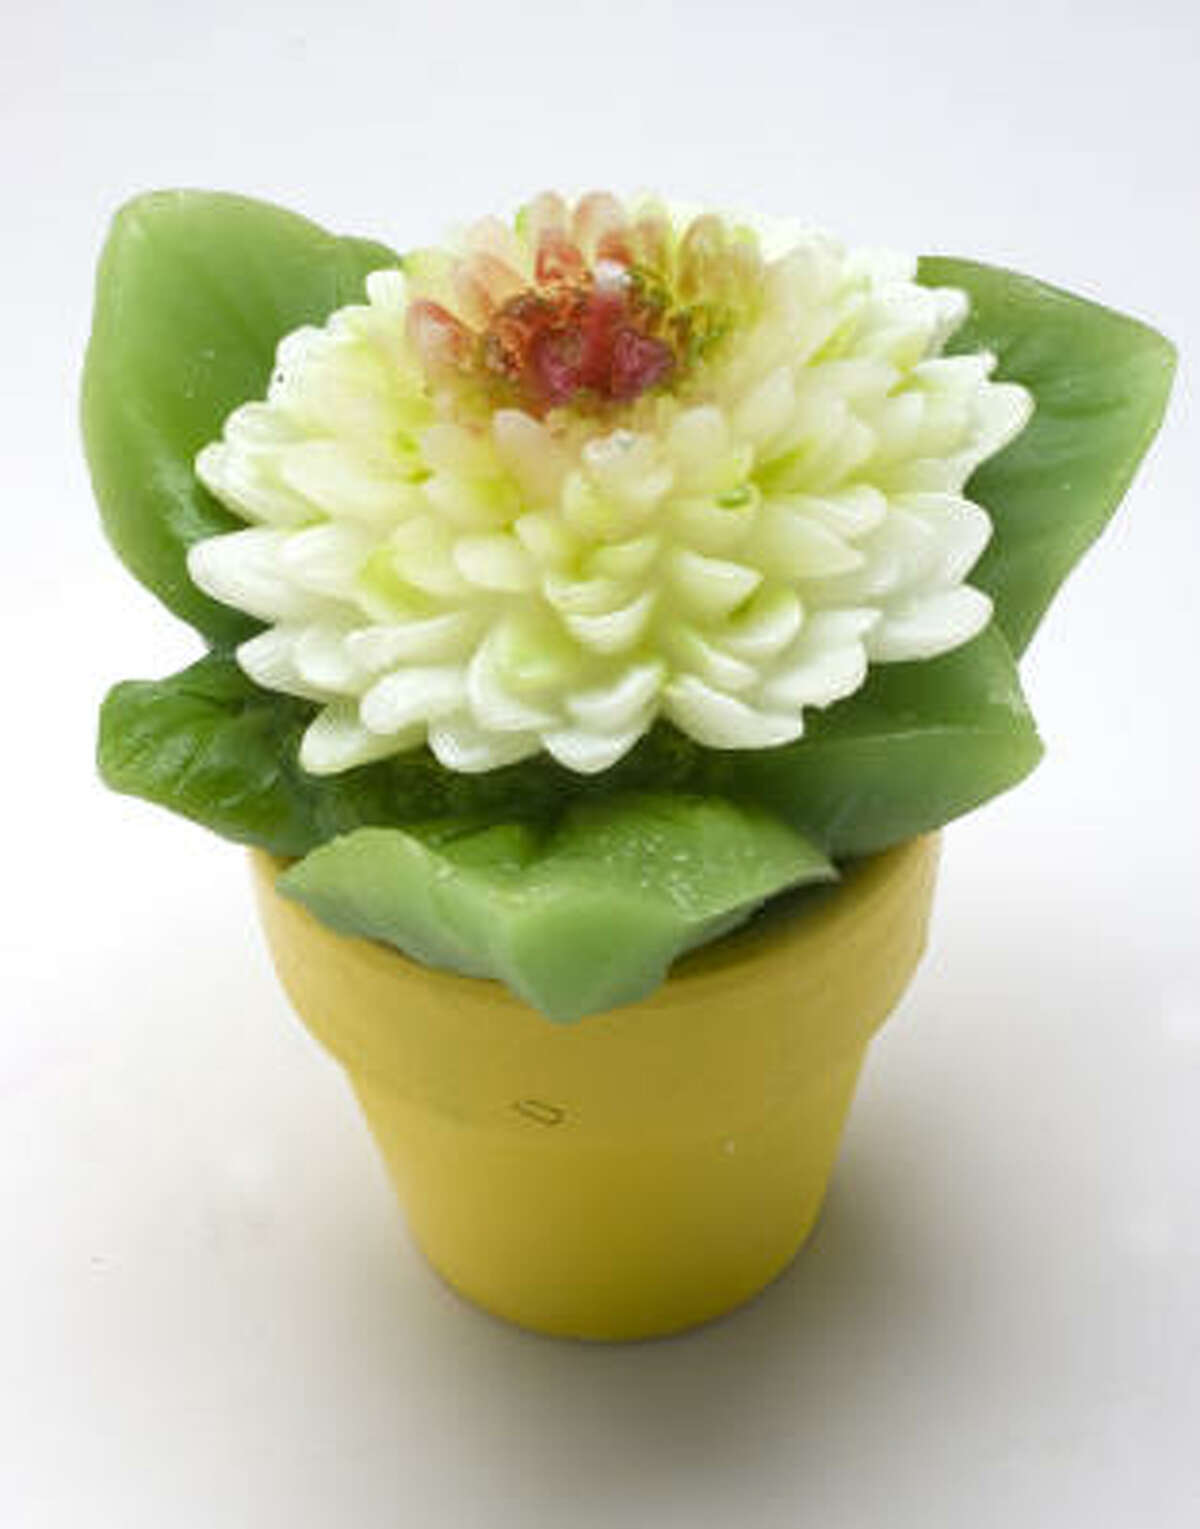 """All house plants should be this easy. Since the potted """"flower"""" is actually a candle, it's hardy and zero maintenance. $7 at Plush Home; plushhome.net."""